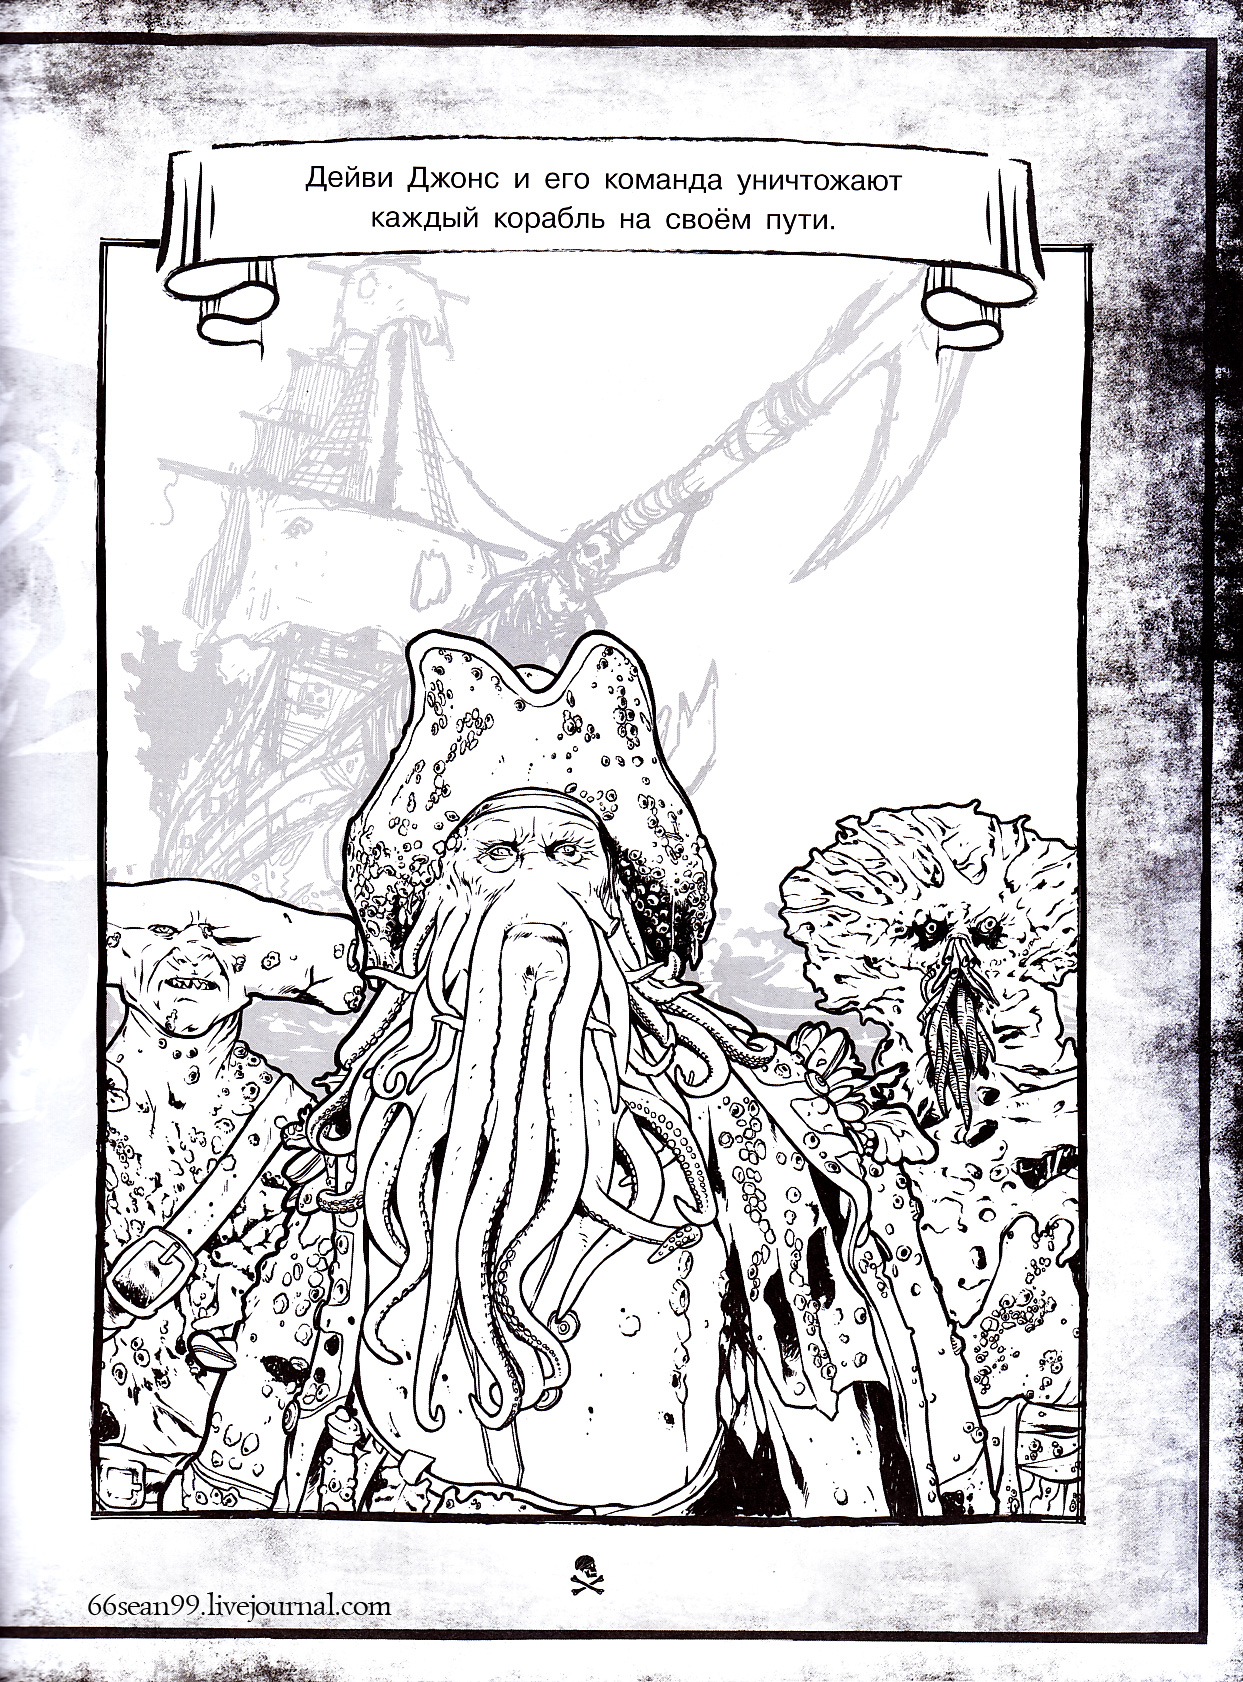 pirates of the caribbean coloring davy jones - Pirates Of The Caribbean Coloring Pages